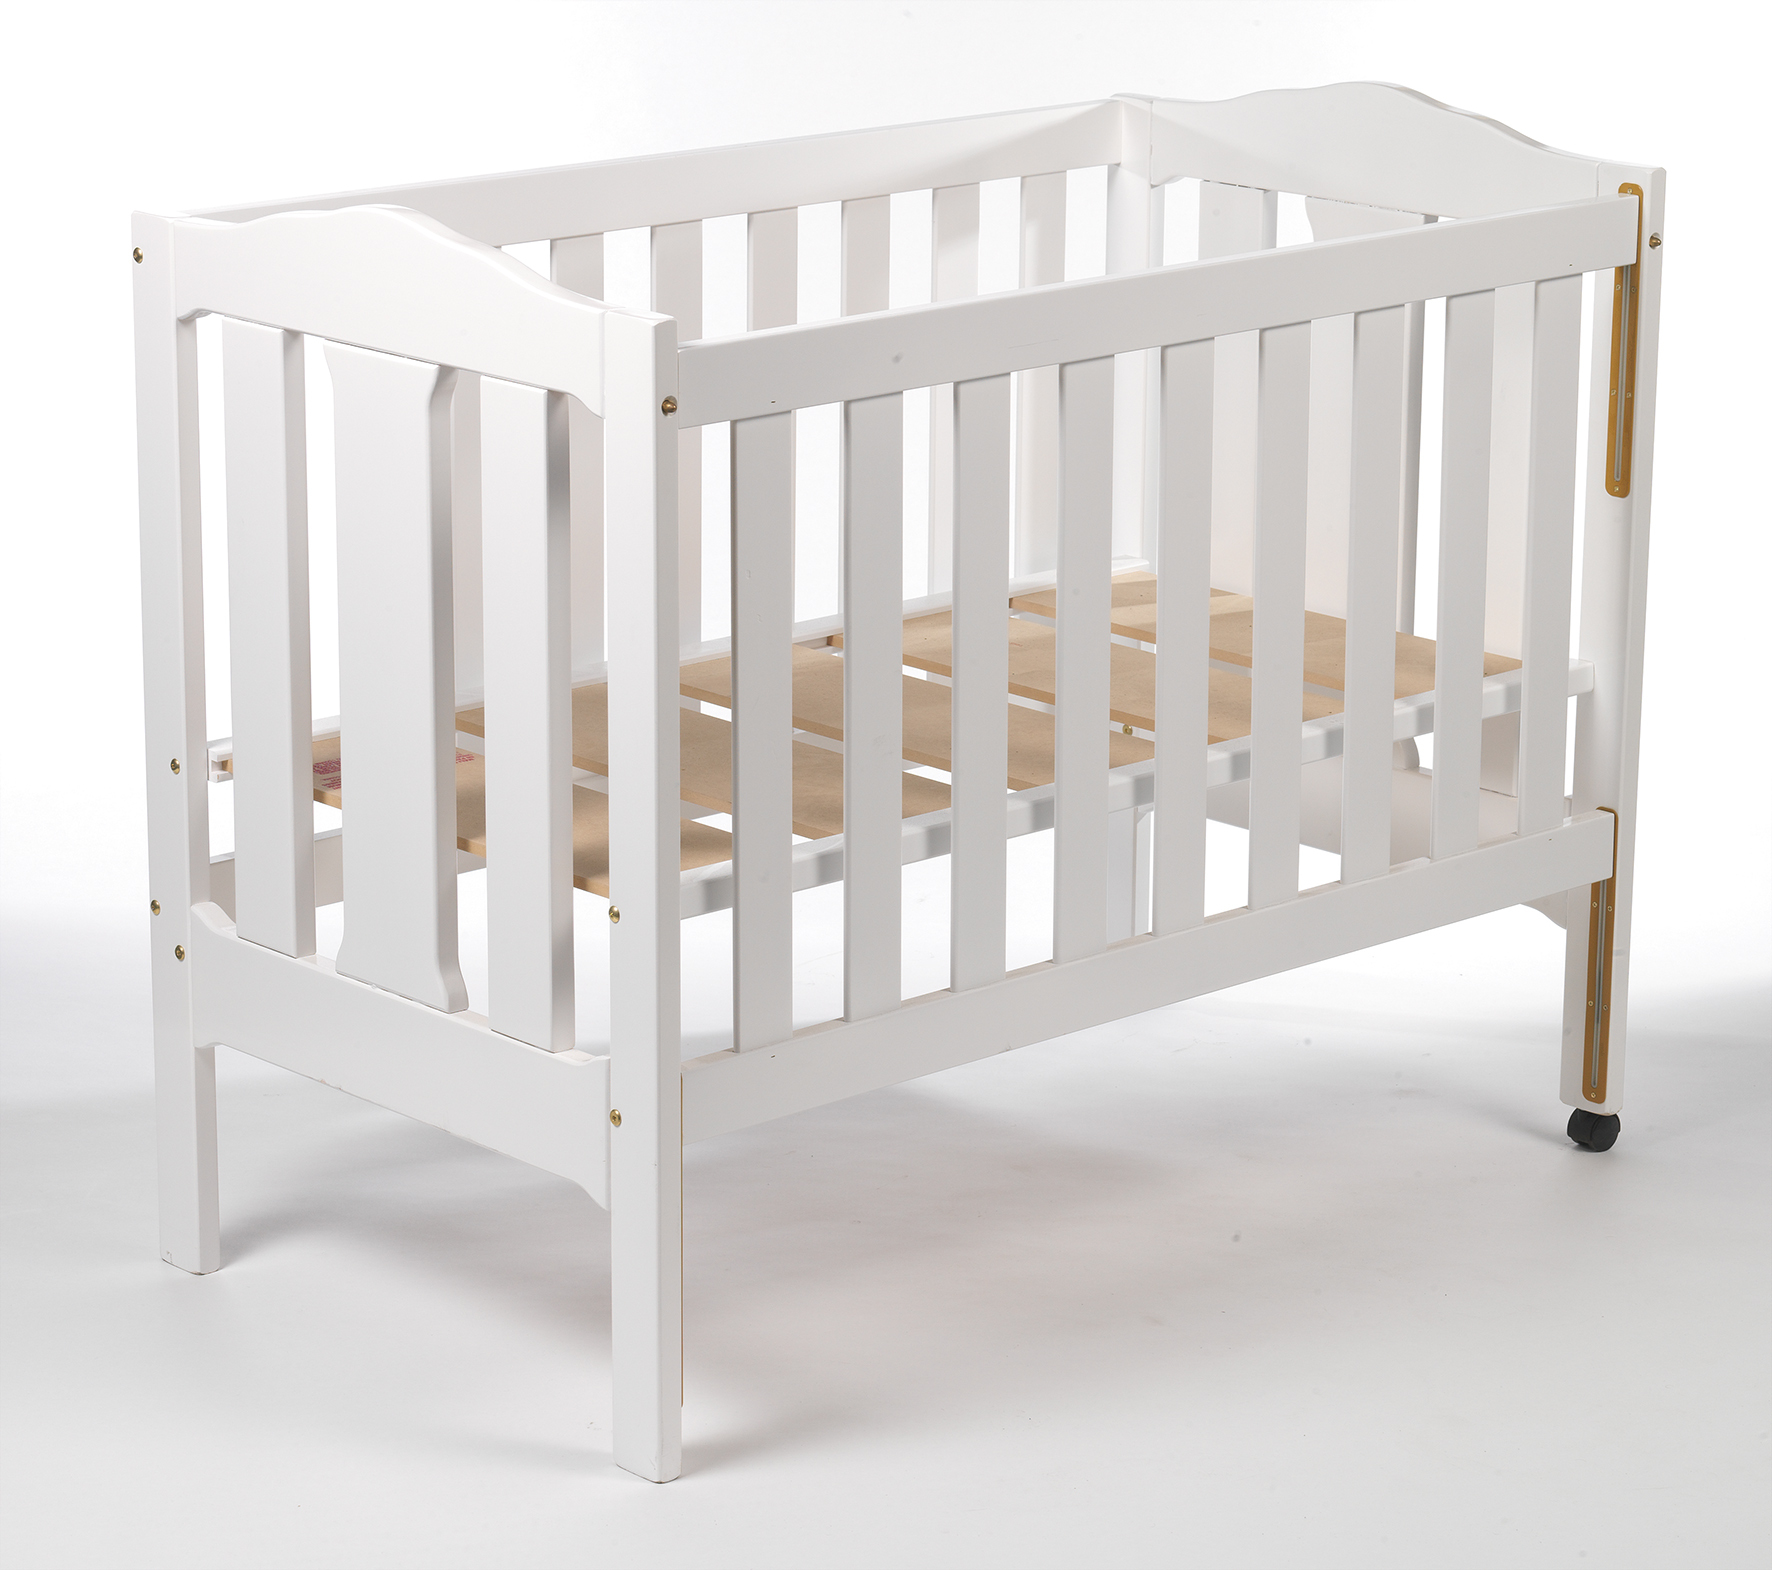 Cots with side protection household cots | product safety australia DXAQQDB